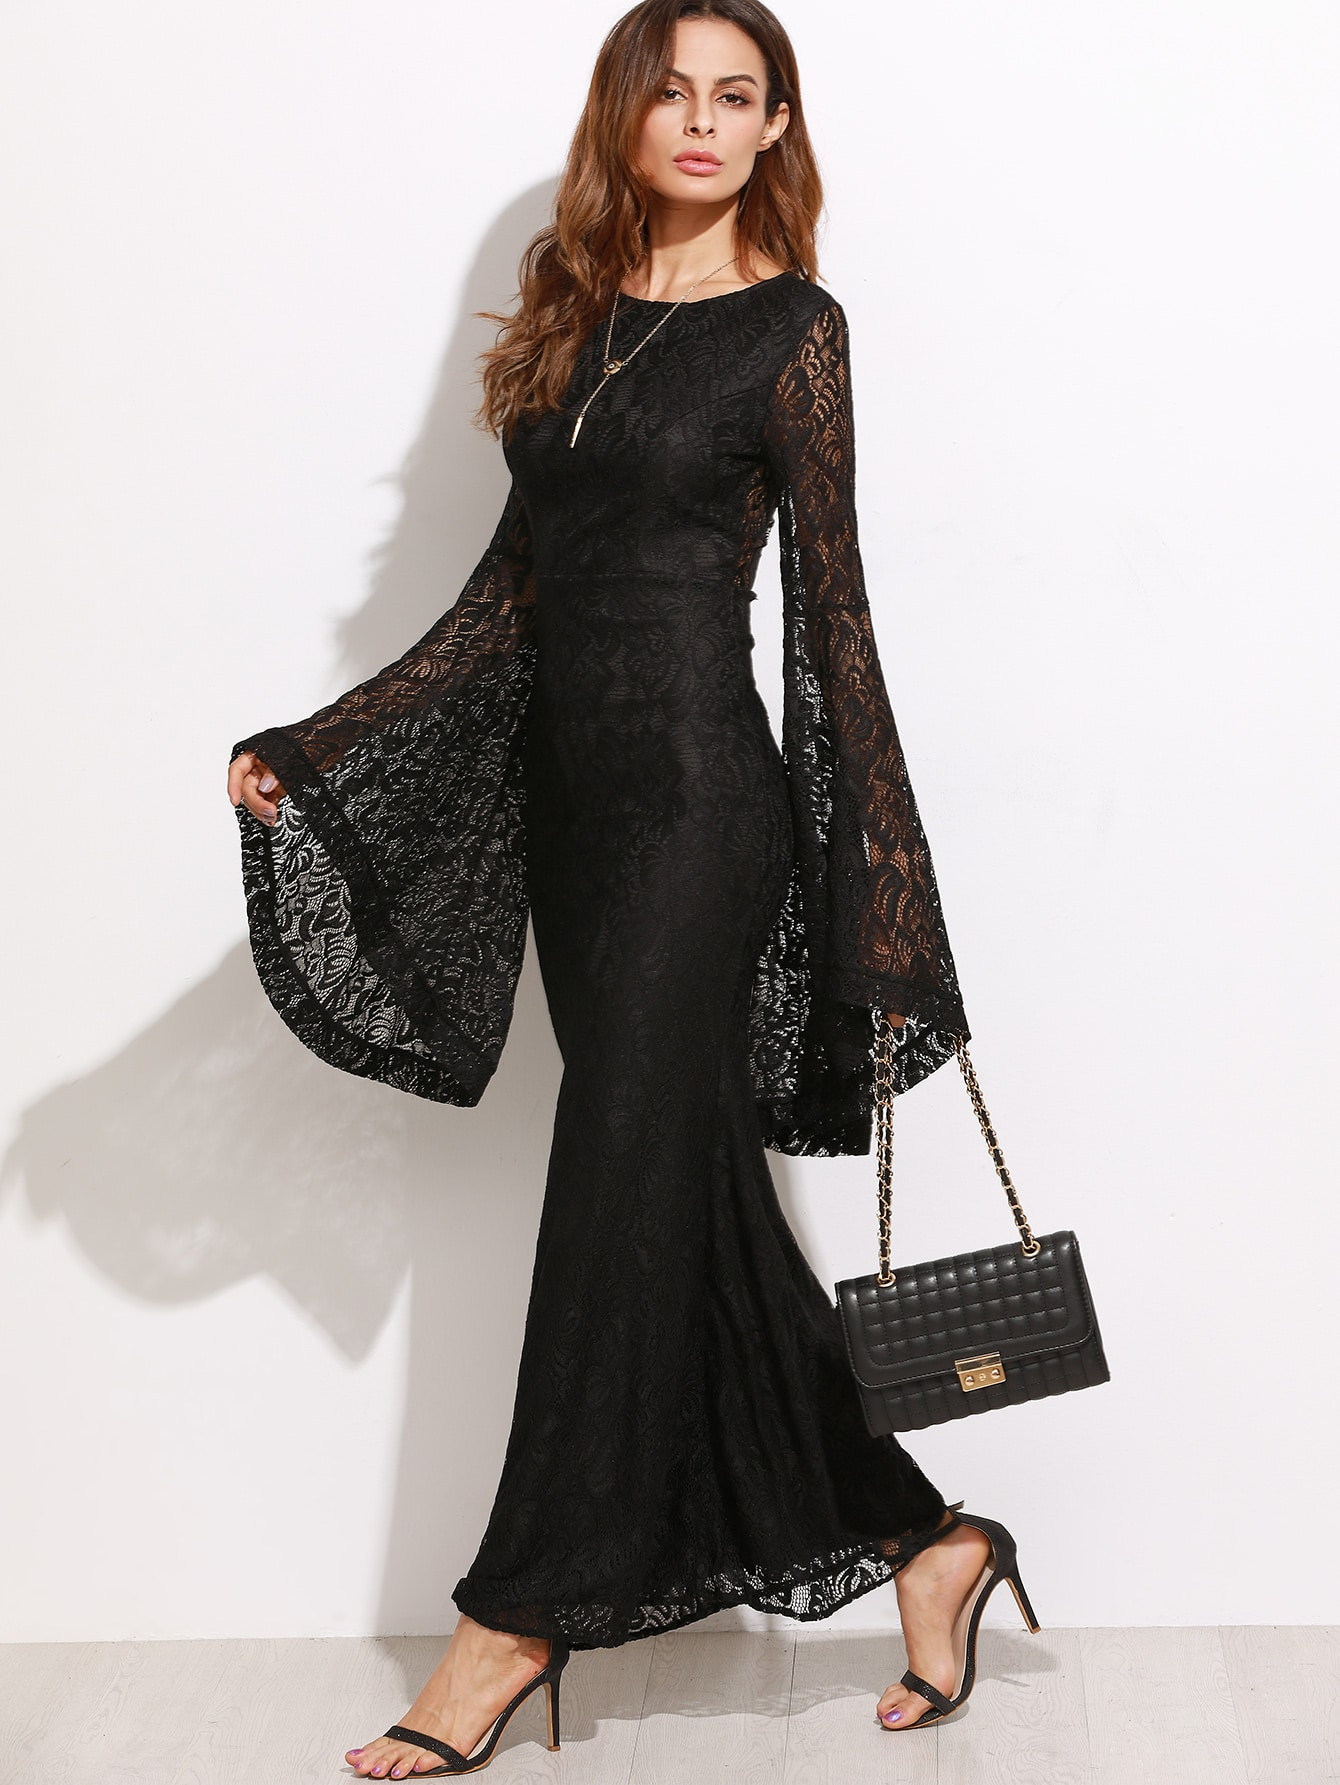 Bell sleeve dress lace